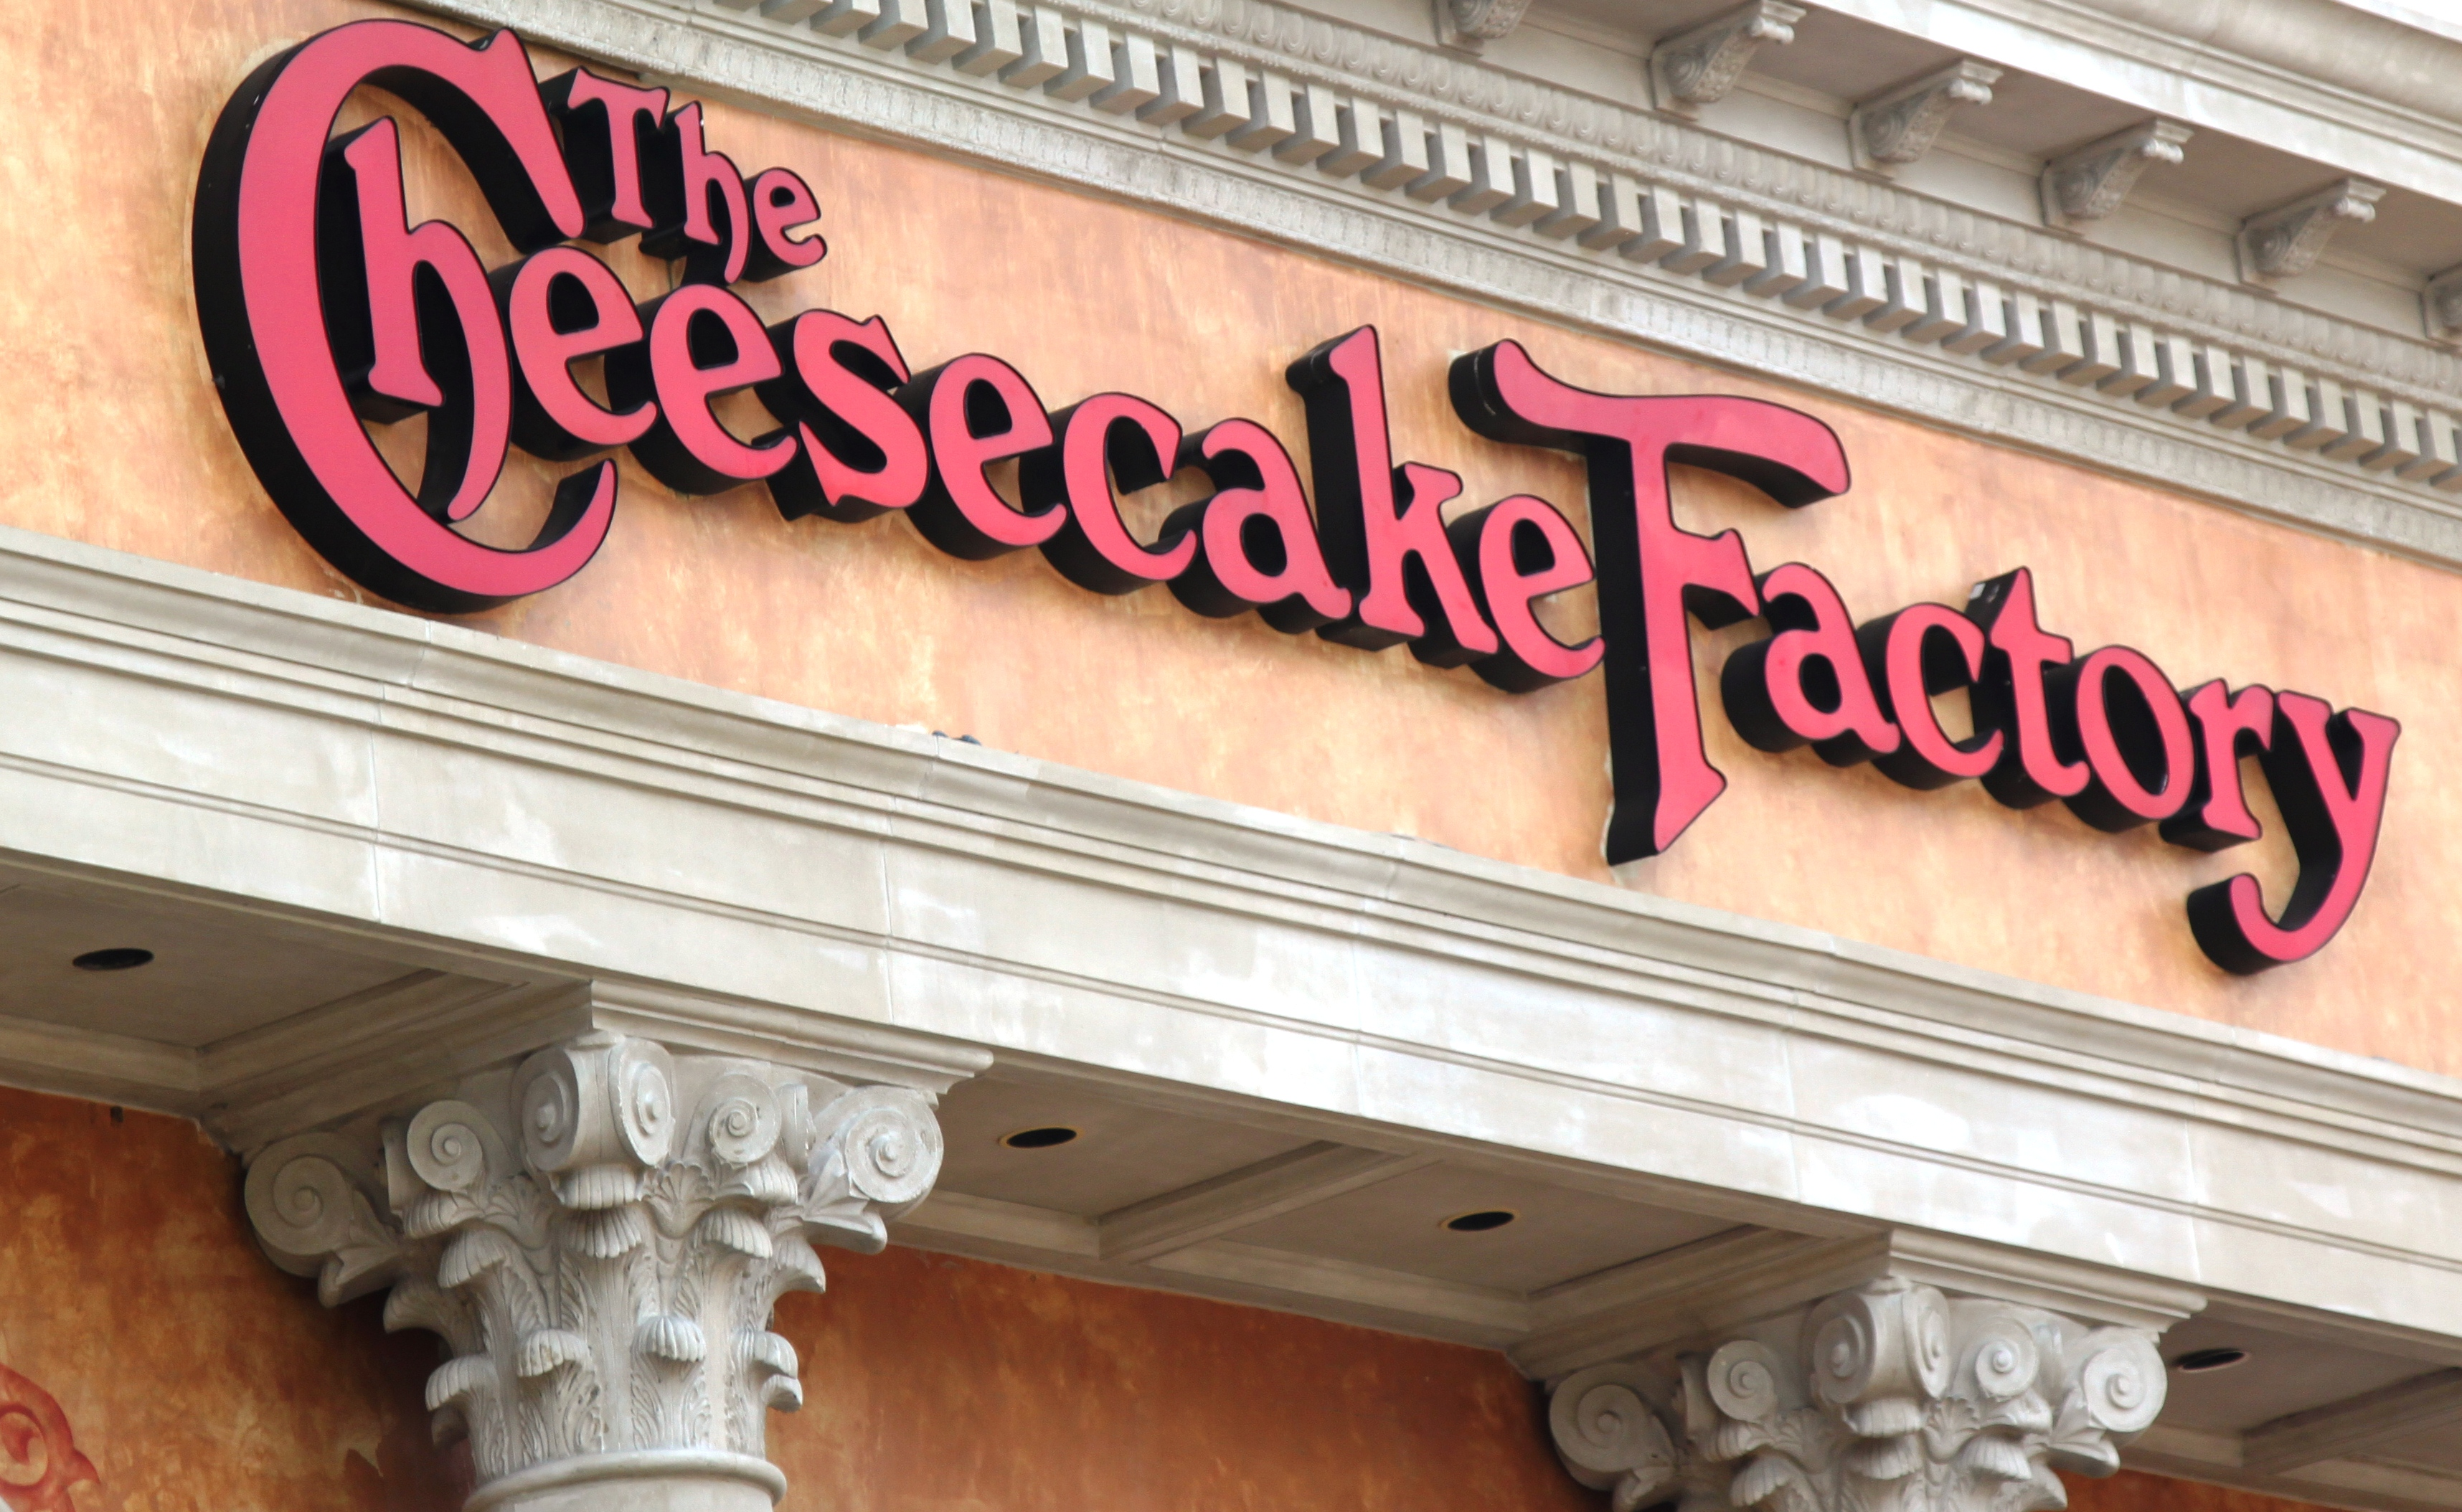 cheesecake factory - photo #15